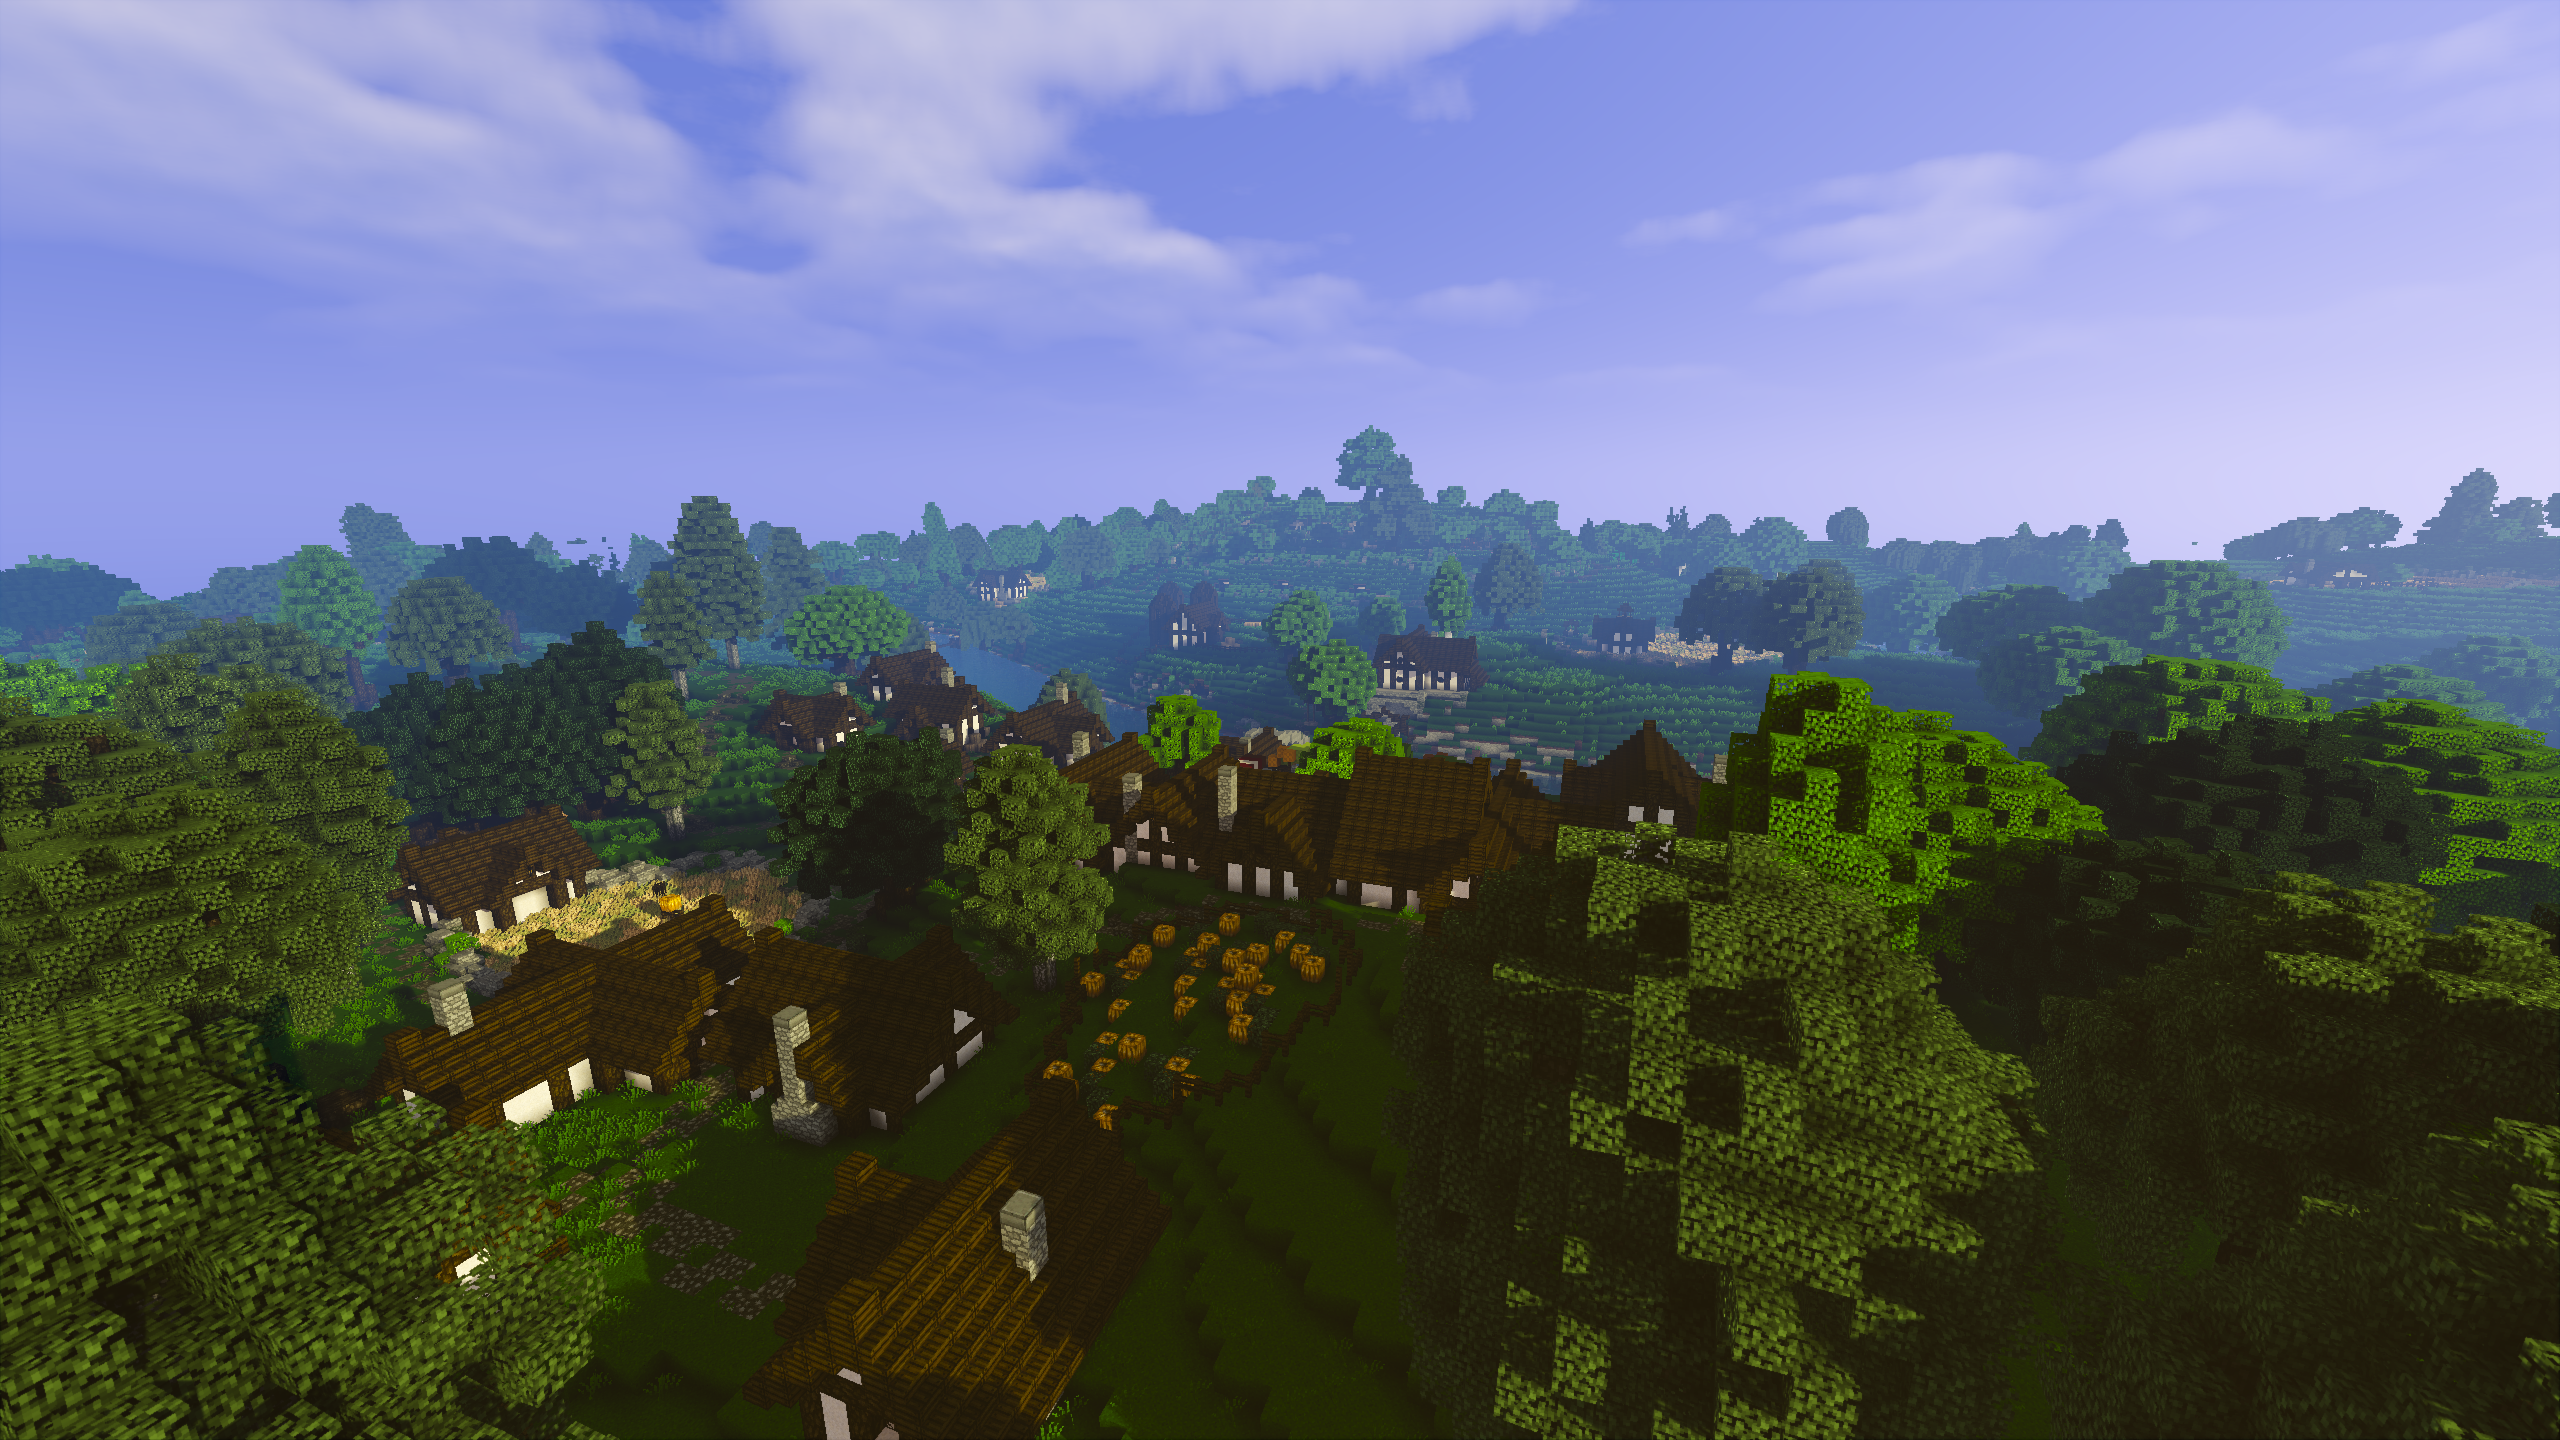 Simple Wallpaper Minecraft Scenery - full  Pic_597691.2712/full